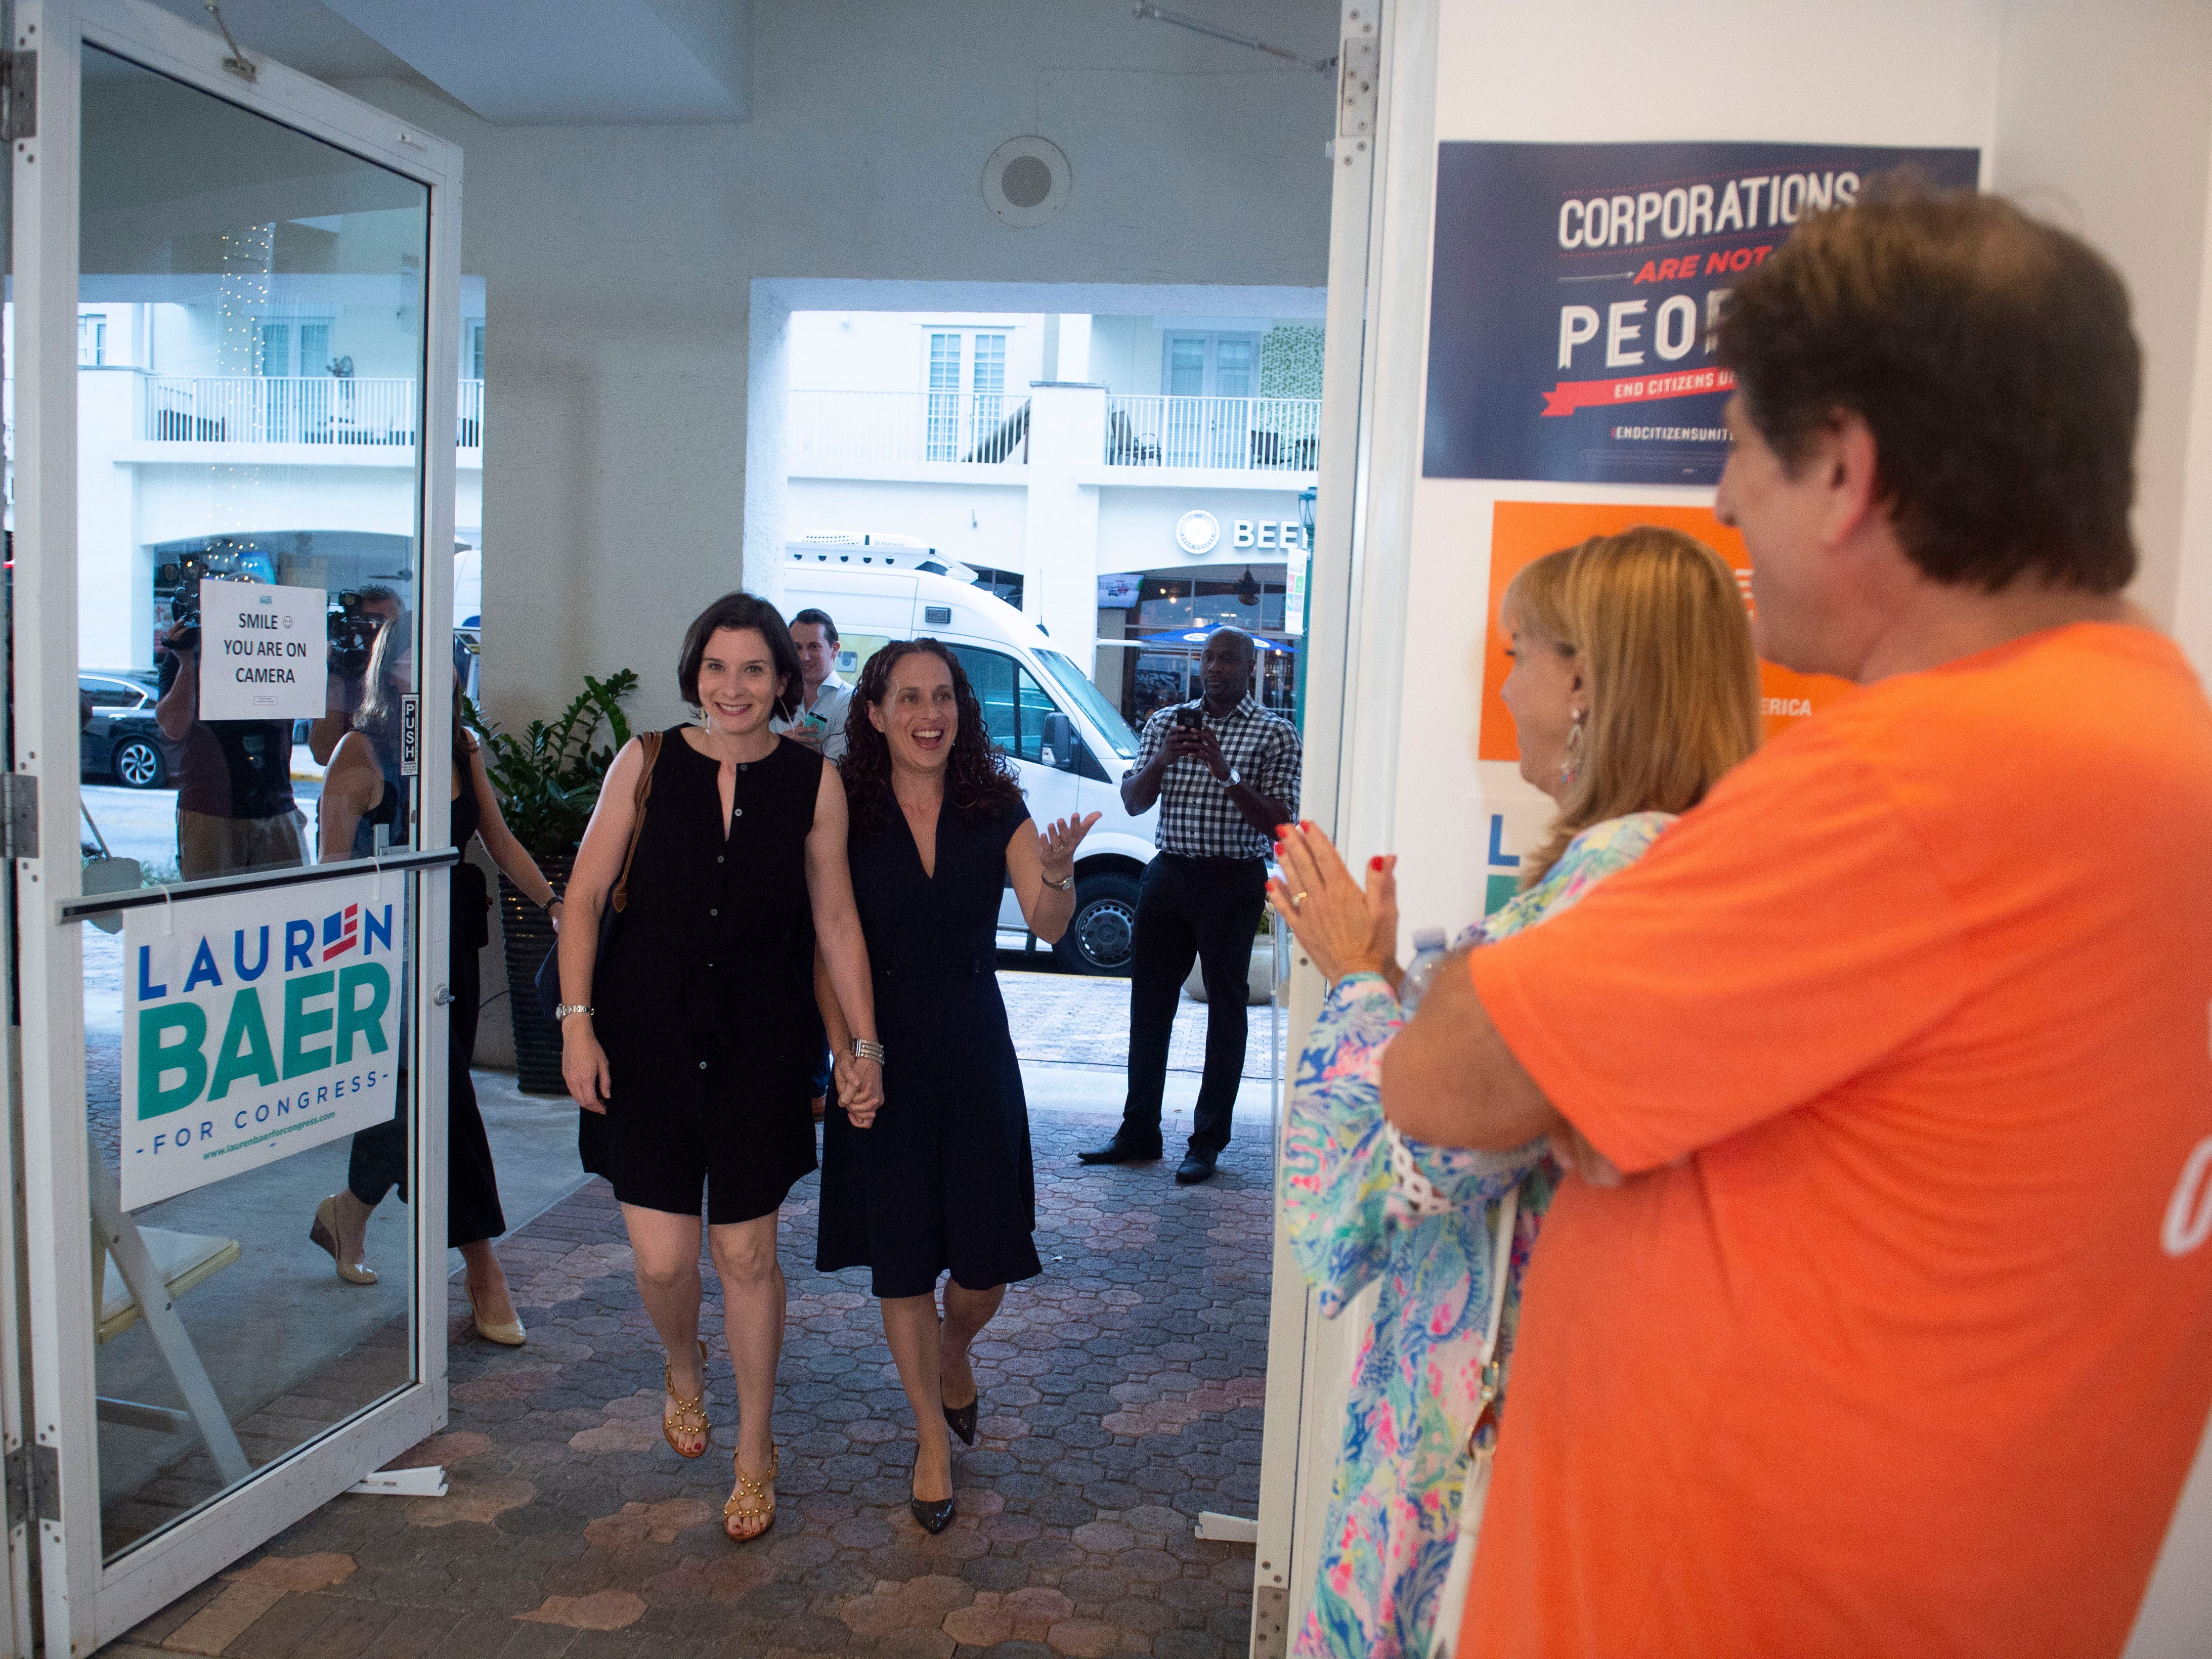 Democrat Lauren Baer, of Palm Beach Gardens, arrives to her primary election night party with wife Emily Meyers on Tuesday, Aug. 28, 2018 at her campaign office in Jupiter. Baer beat challenger Pam Keith in the in the U.S. House District 18 race. Baer, a former Obama administration foreign policy advisor, will be facing incumbent U.S. Rep. Brian Mast in the Nov. 6 general election.